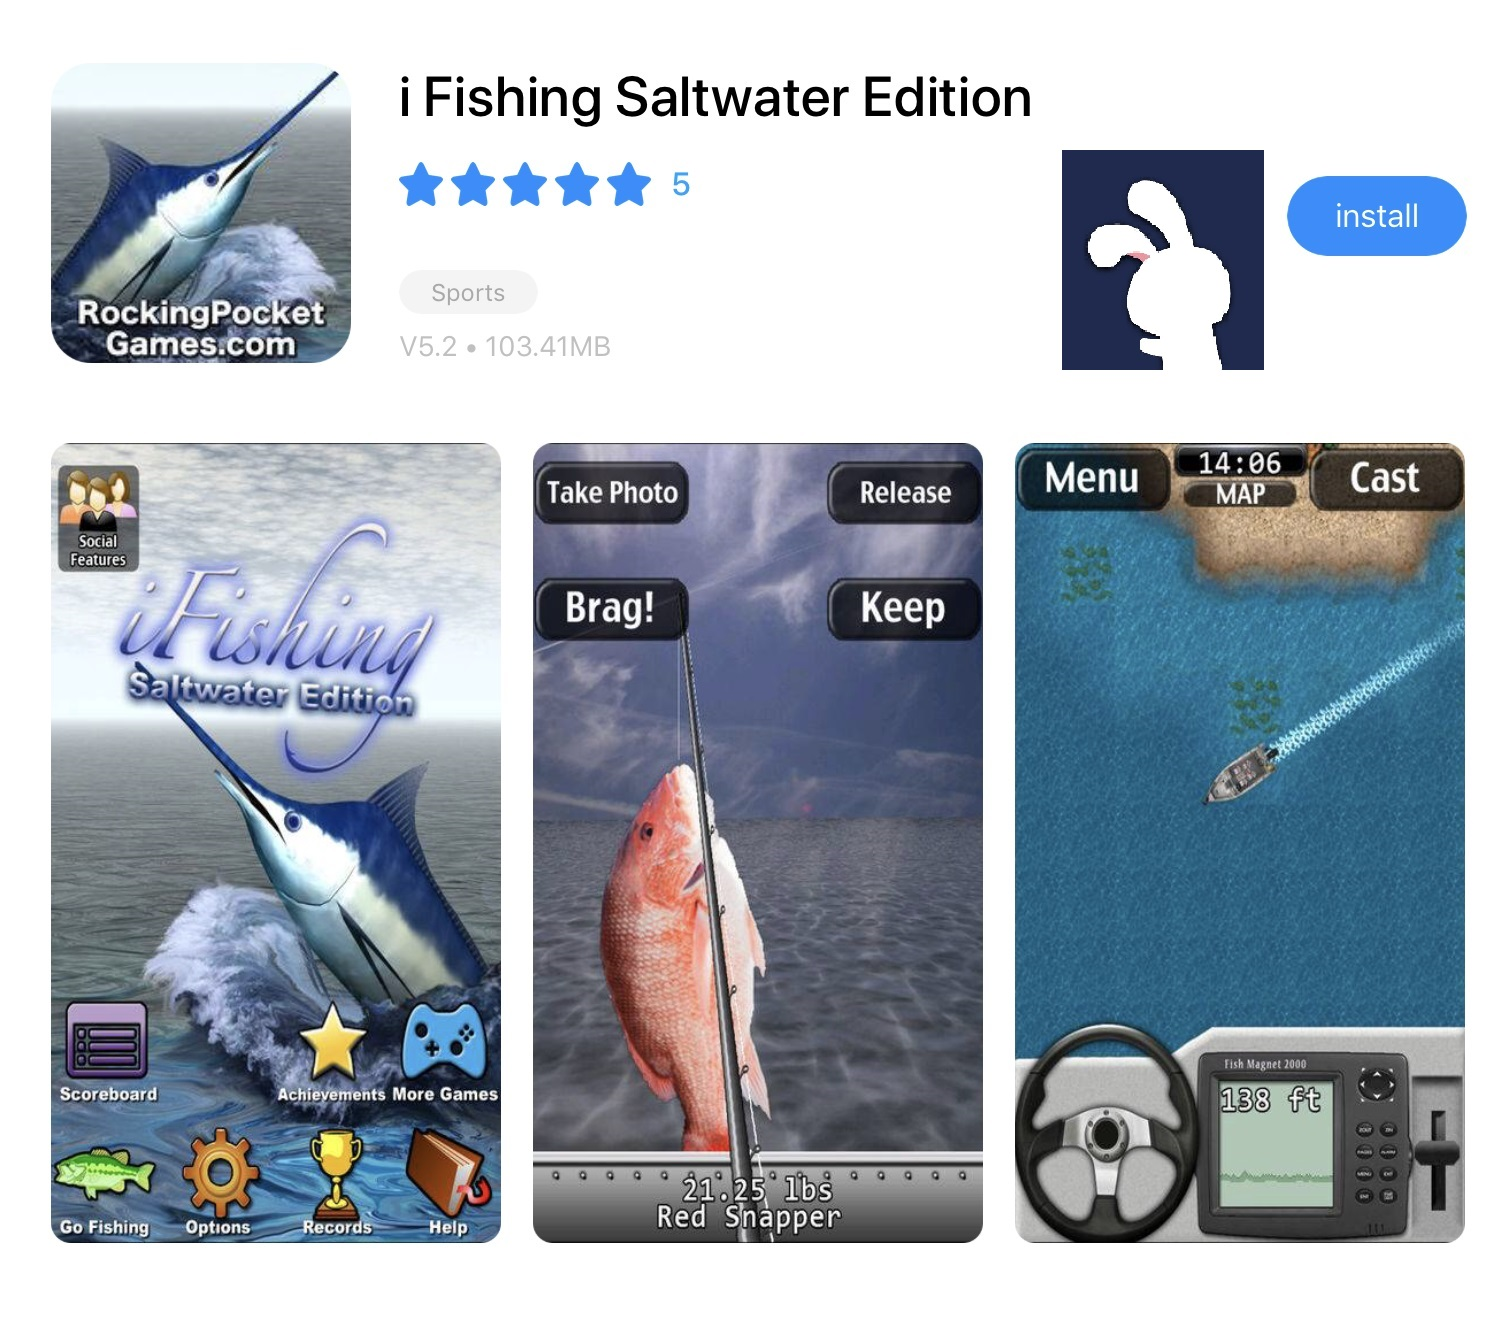 i Fishing Saltwater Edition